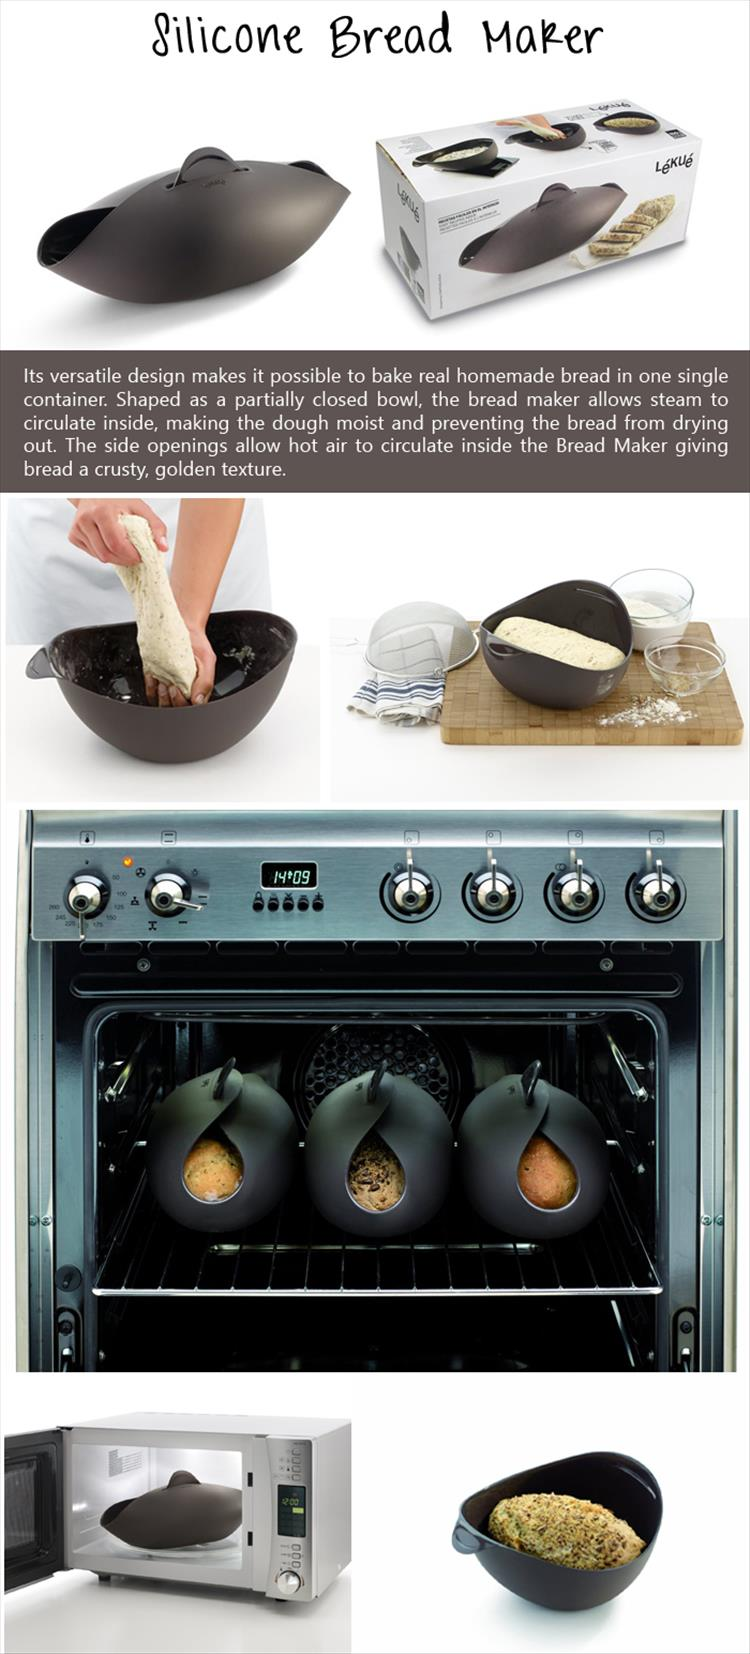 silicone-bread-maker